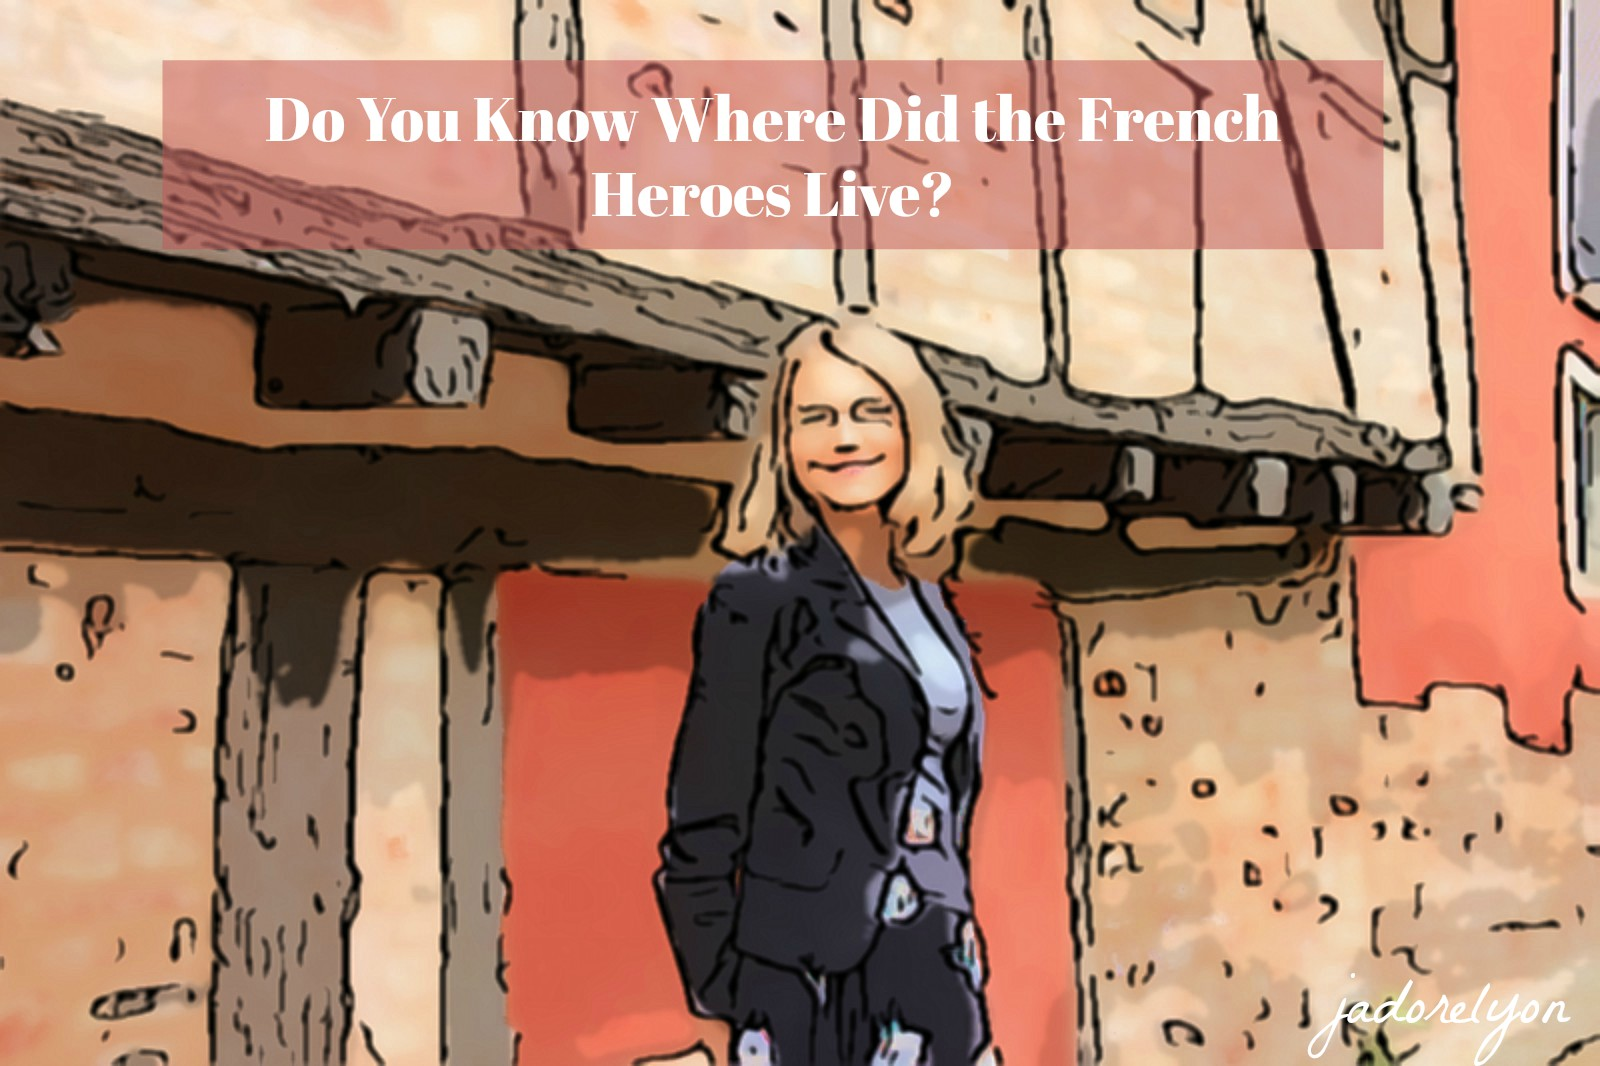 Where did the French Heroes live